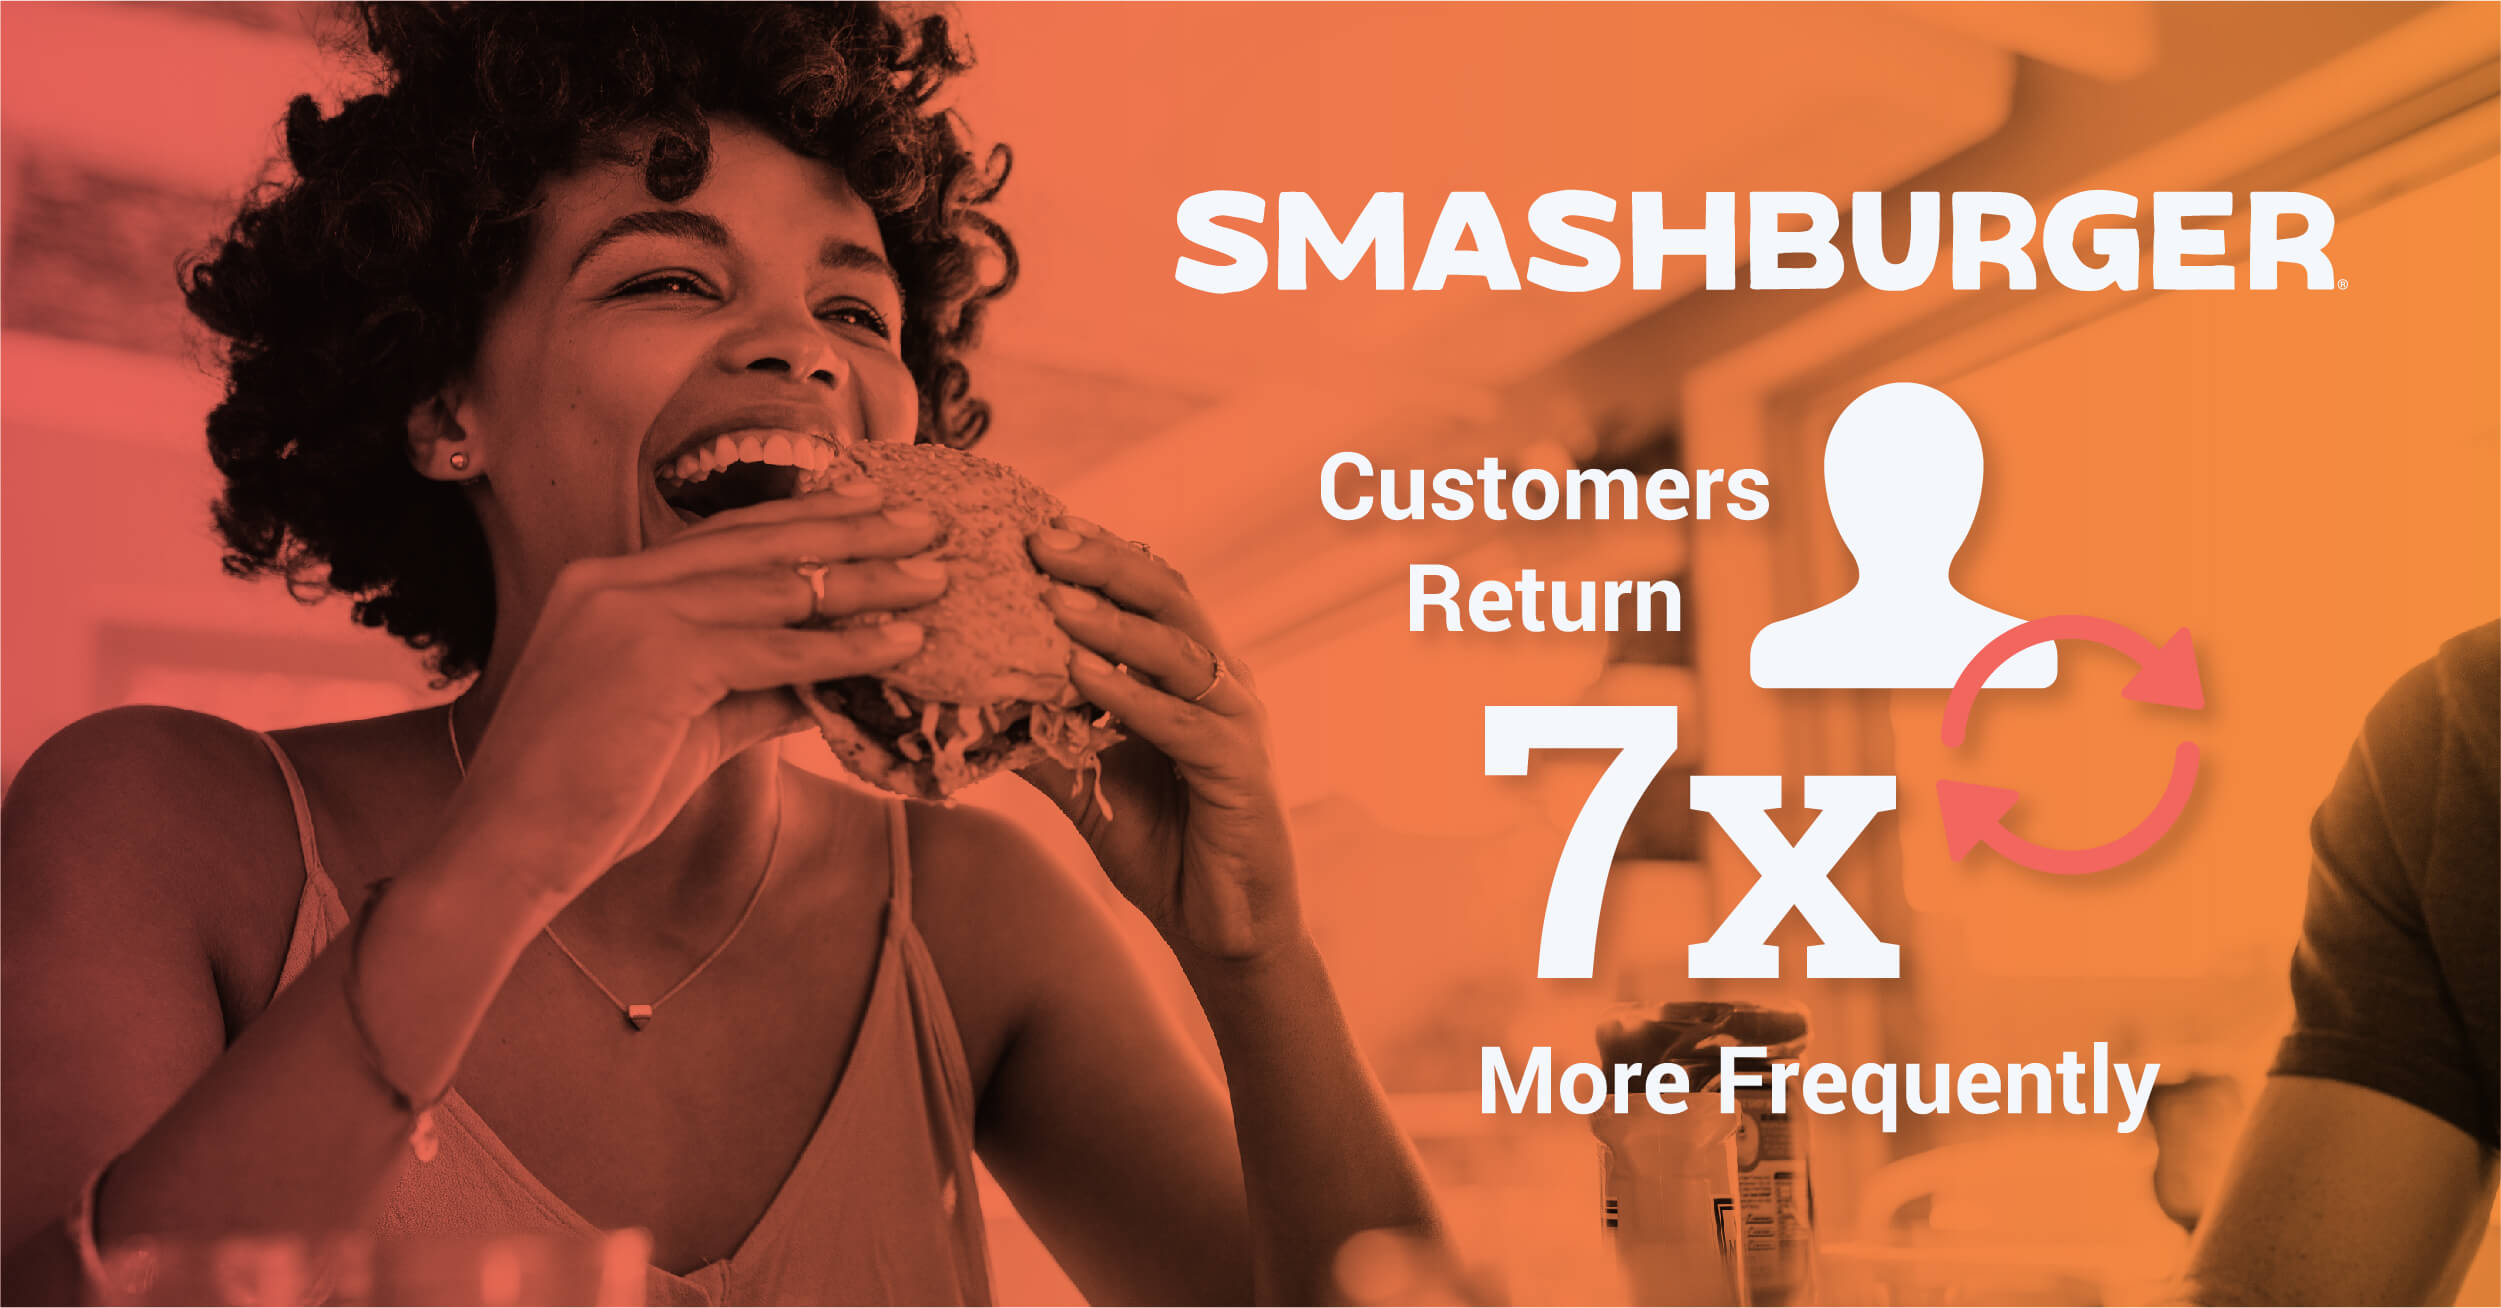 Recurrency Brings Smashburger Customers Back